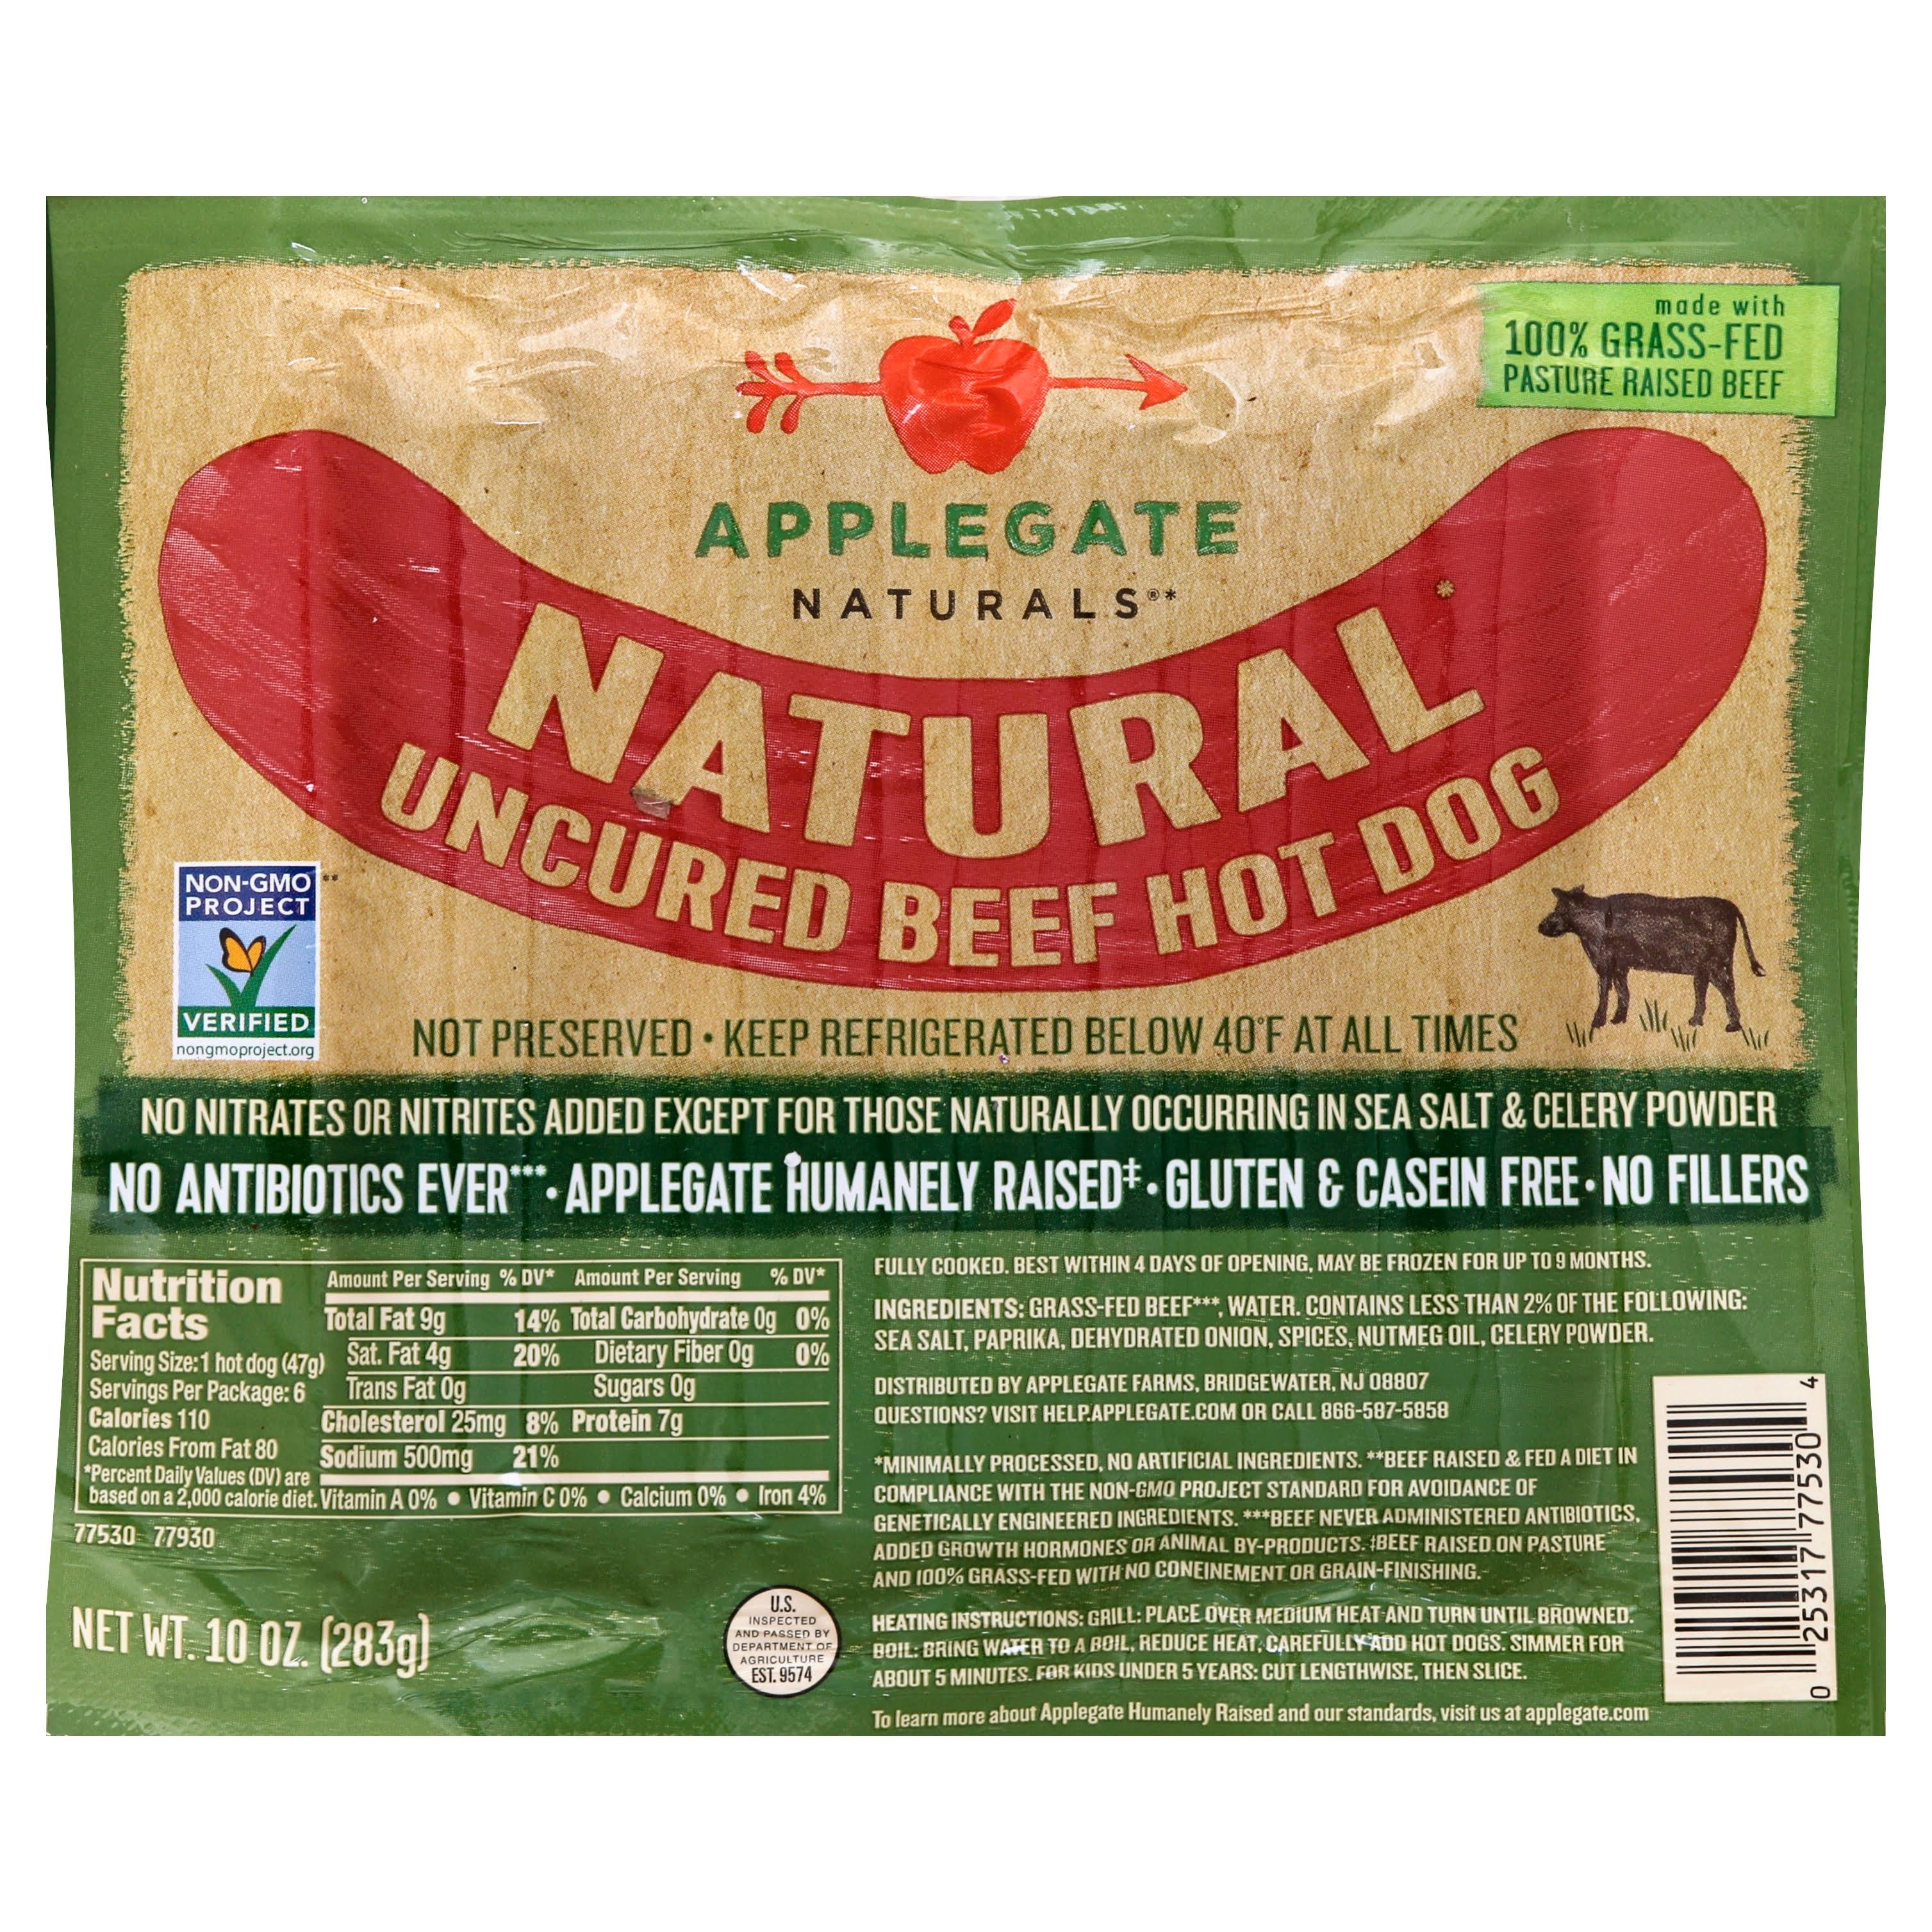 Applegate Naturals Natural Uncured Beef Hot Dog